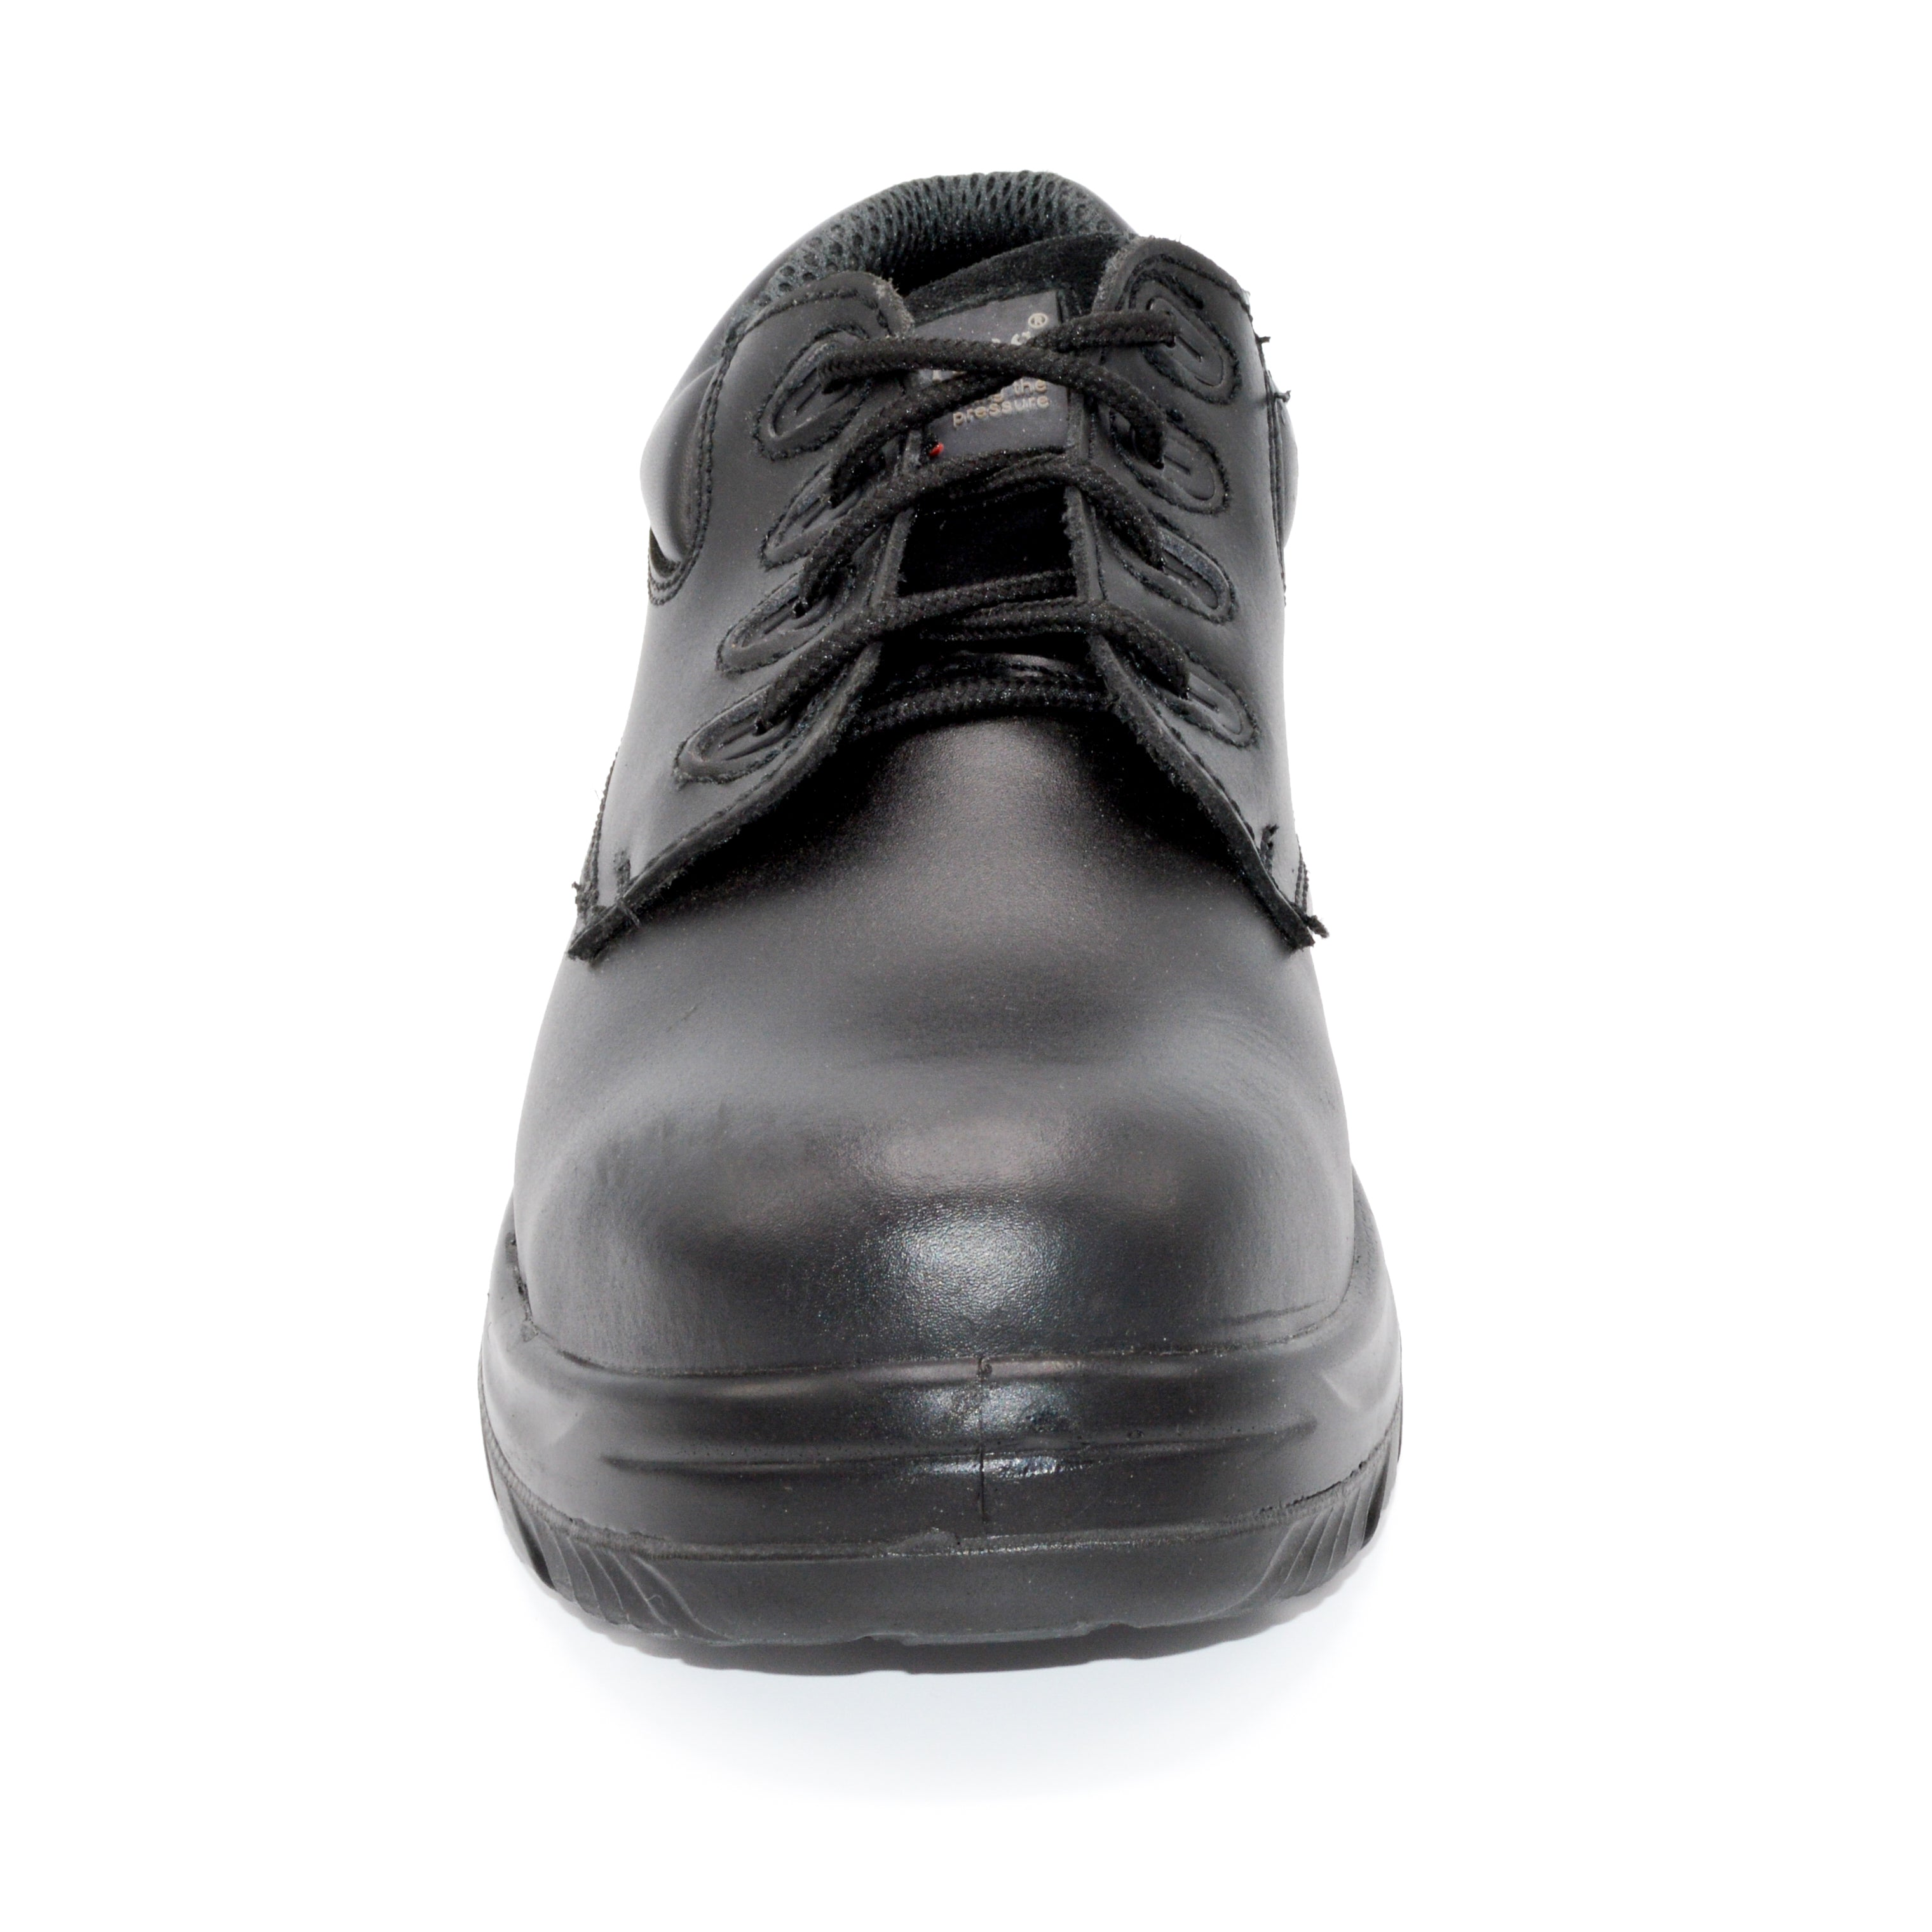 Grafters M9504A Wide Fitting Safety Shoe - 4E Fitting